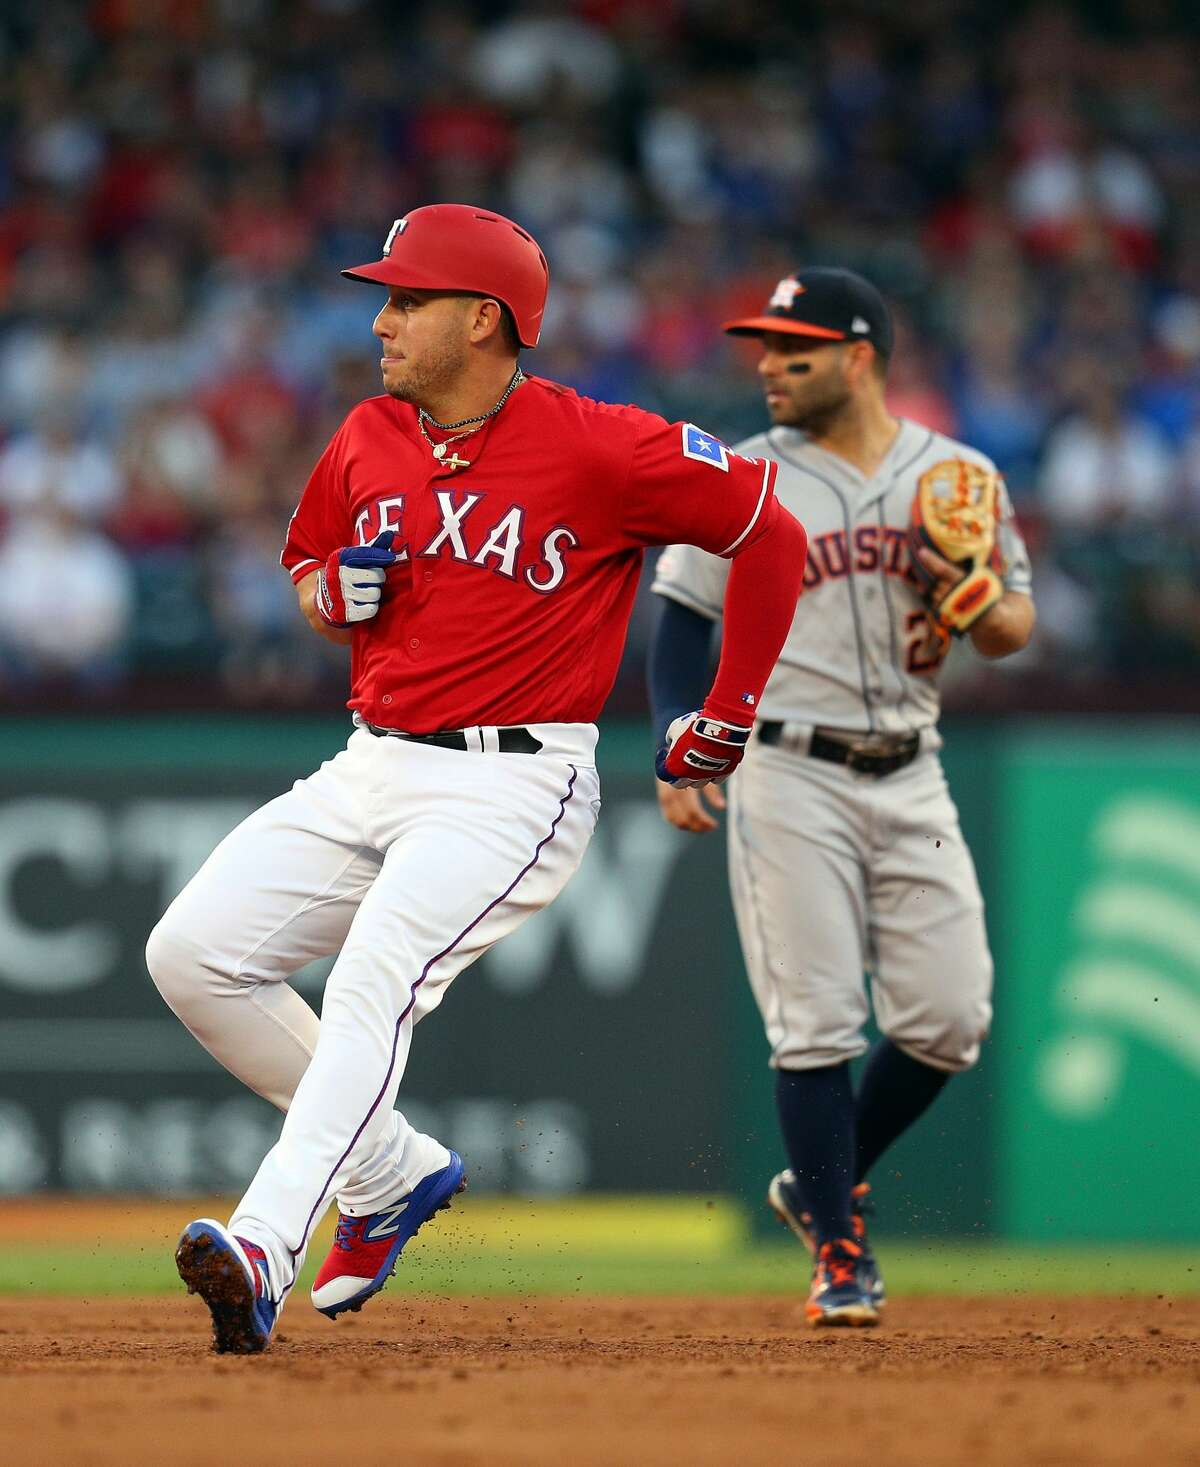 ARLINGTON, TEXAS - APRIL 20: Asdrubal Cabrera #14 of the Texas Rangers stops after advancing to second on a hit in the first inning against the Houston Astros at Globe Life Park in Arlington on April 20, 2019 in Arlington, Texas. (Photo by Richard Rodriguez/Getty Images)